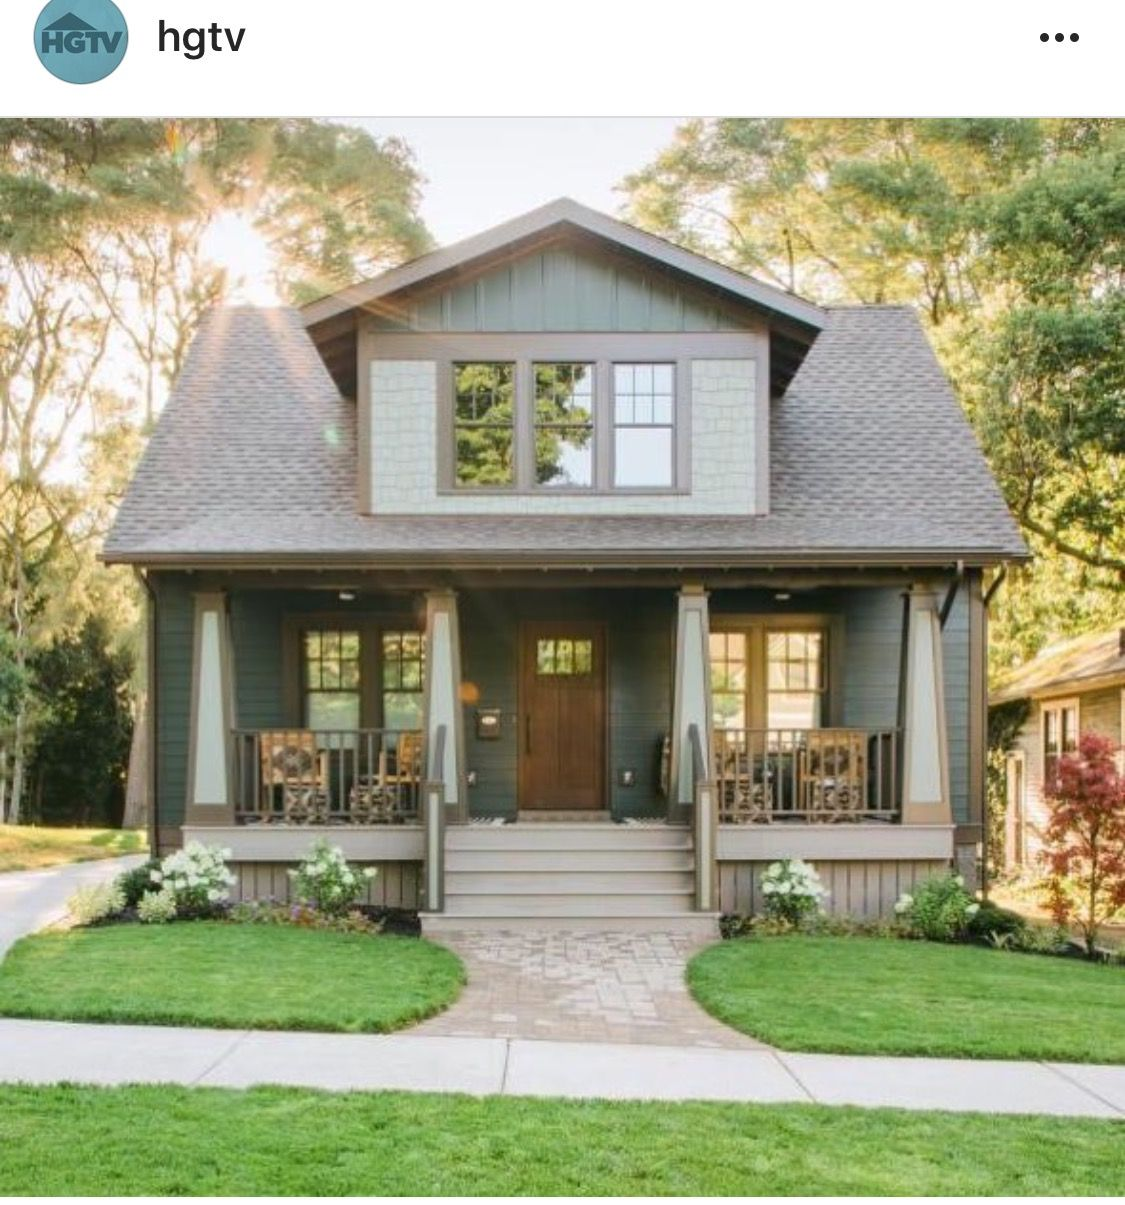 Craftsman style house designing our home in 2019 - Craftsman home paint colors exterior ...